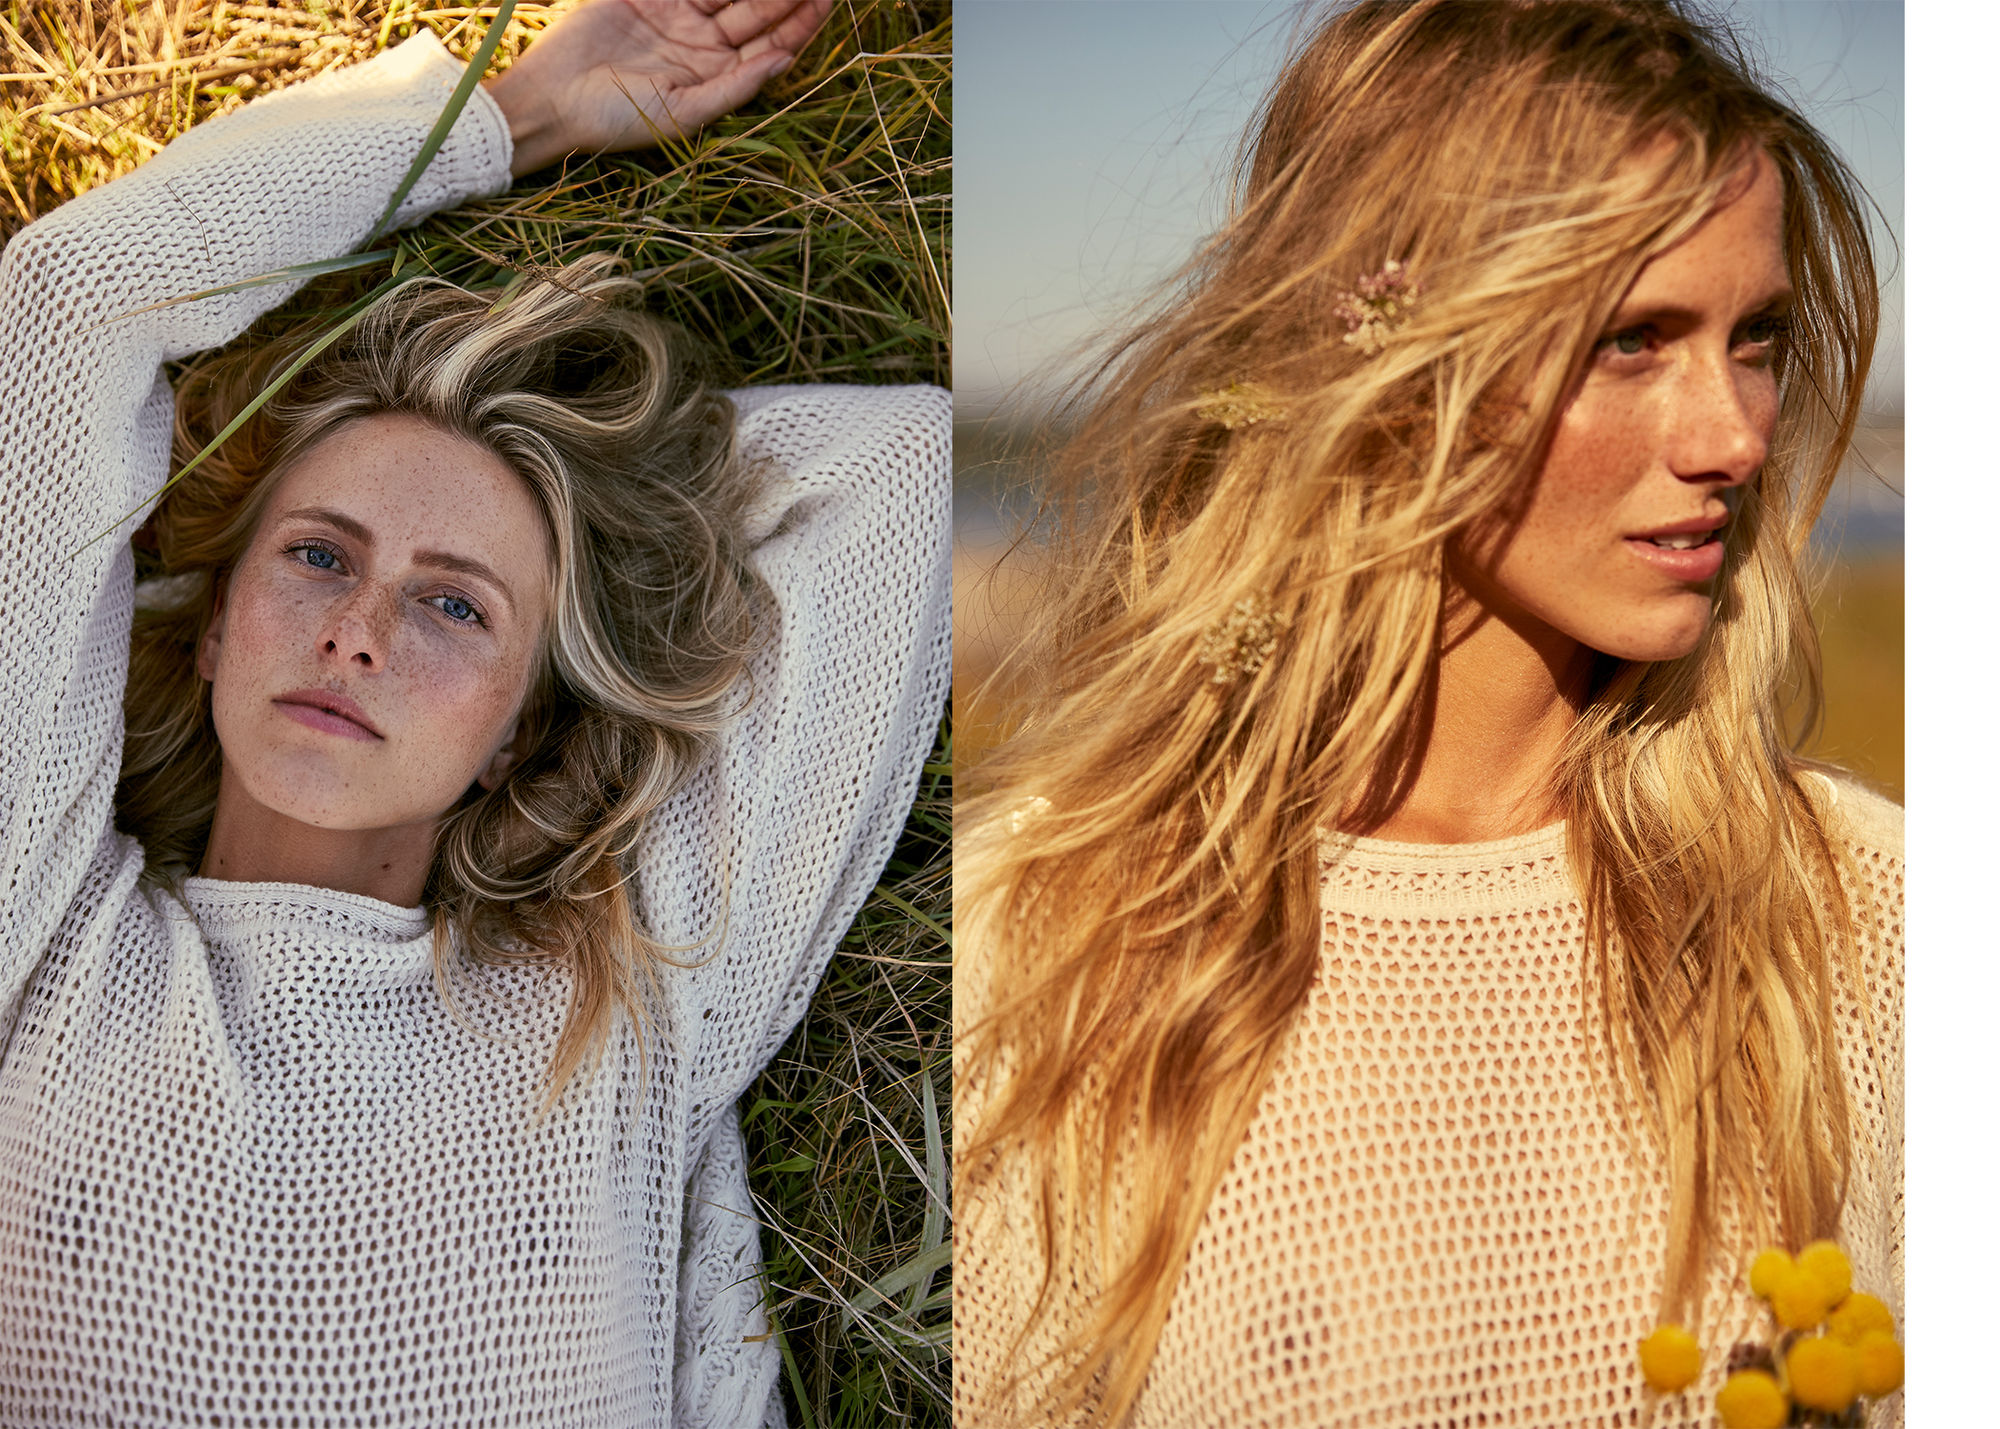 ALYSSA PIZER MANAGEMENT: Silja & Phil By Kate Moore